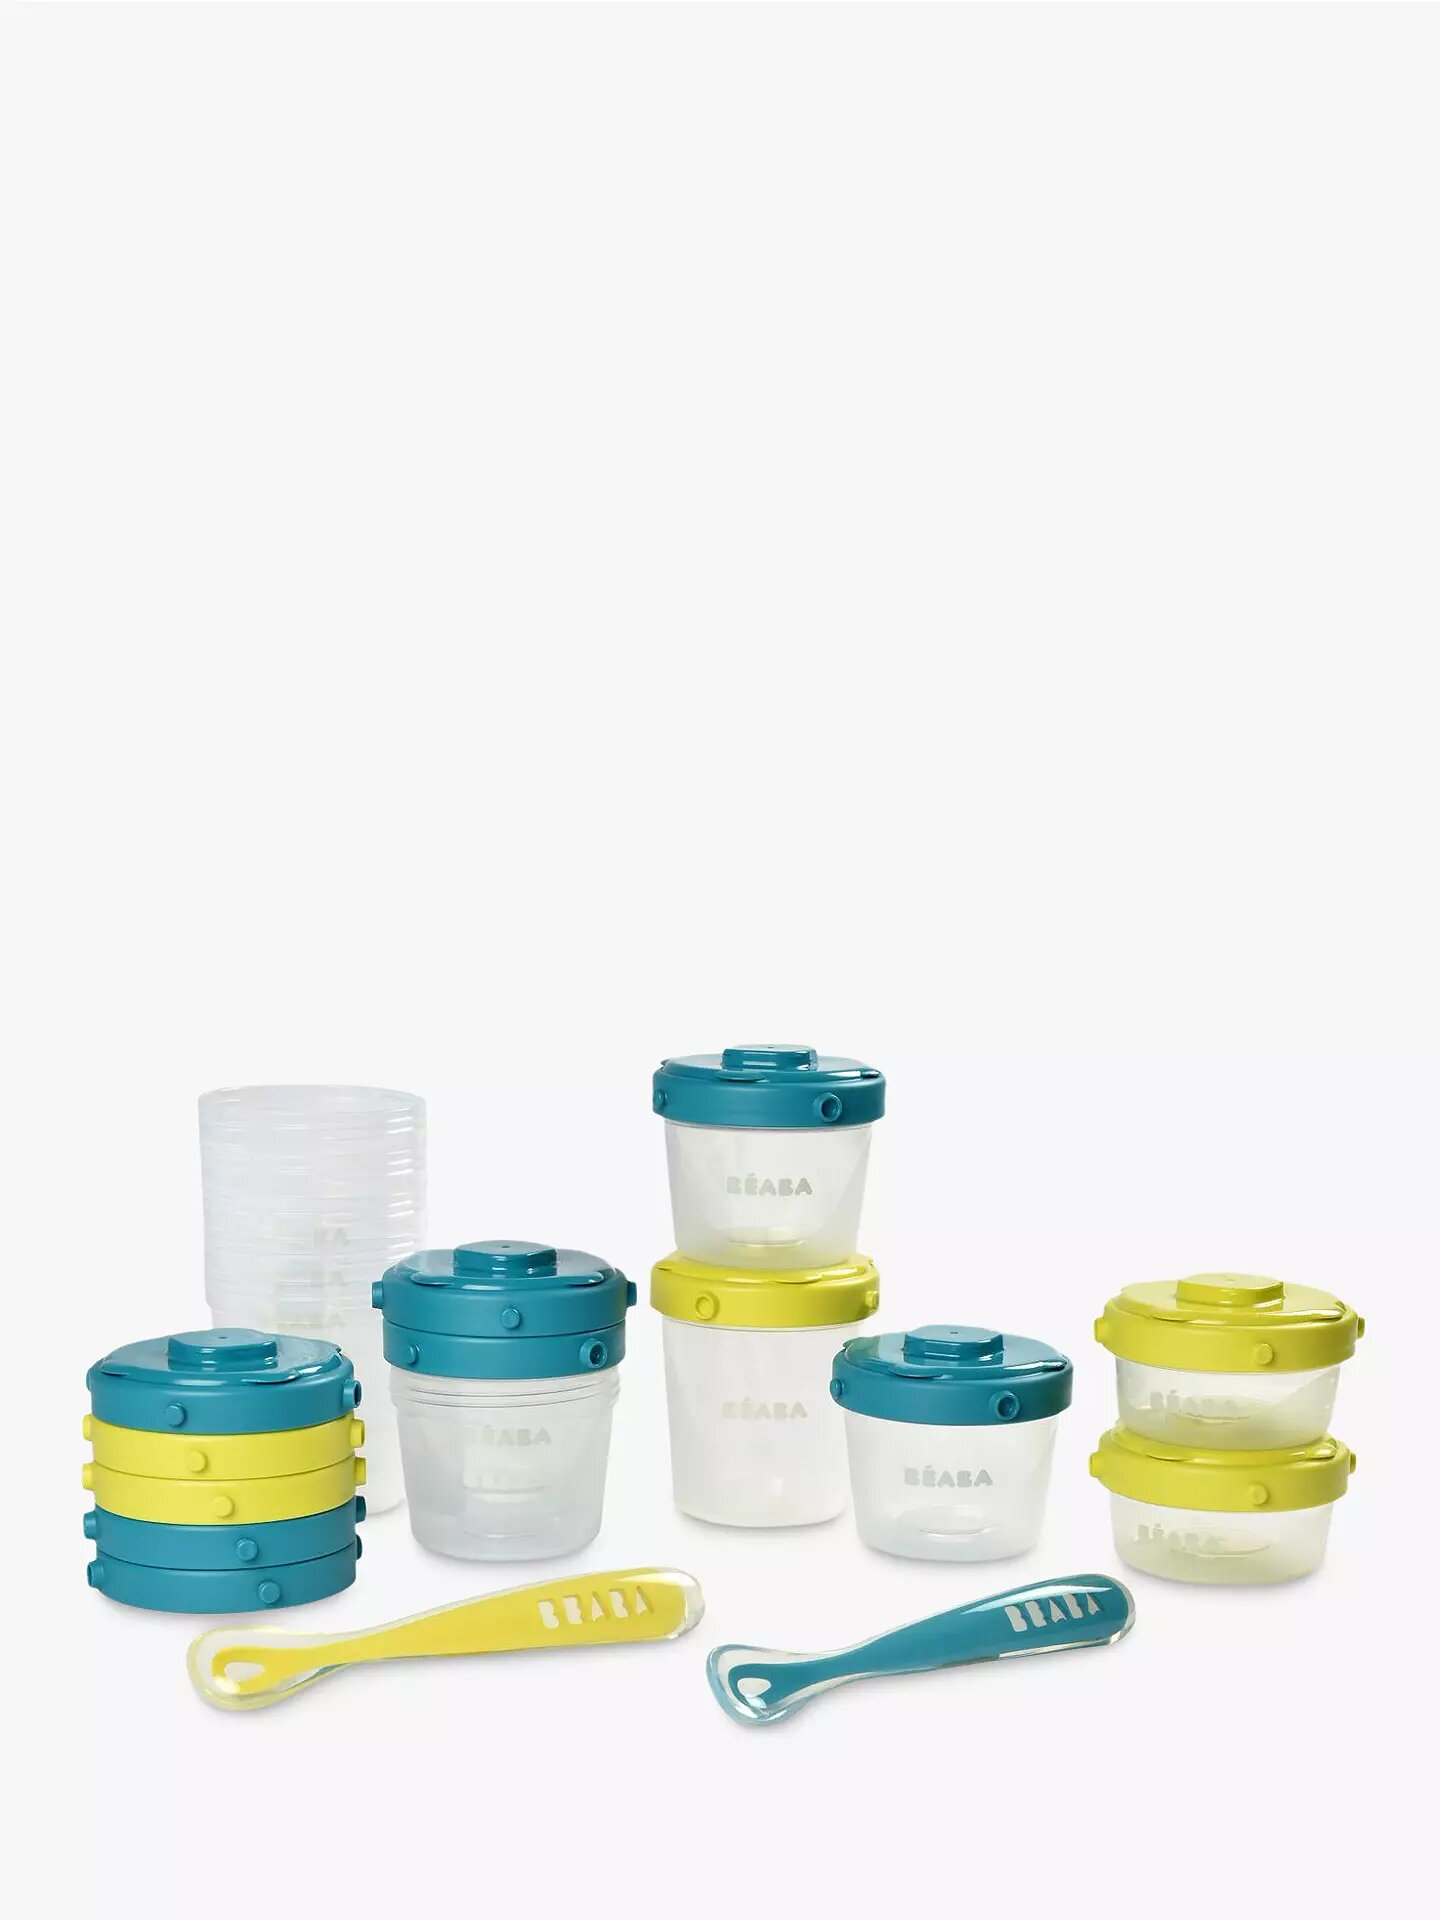 Beaba Baby First Meal Food Storage Container Set.